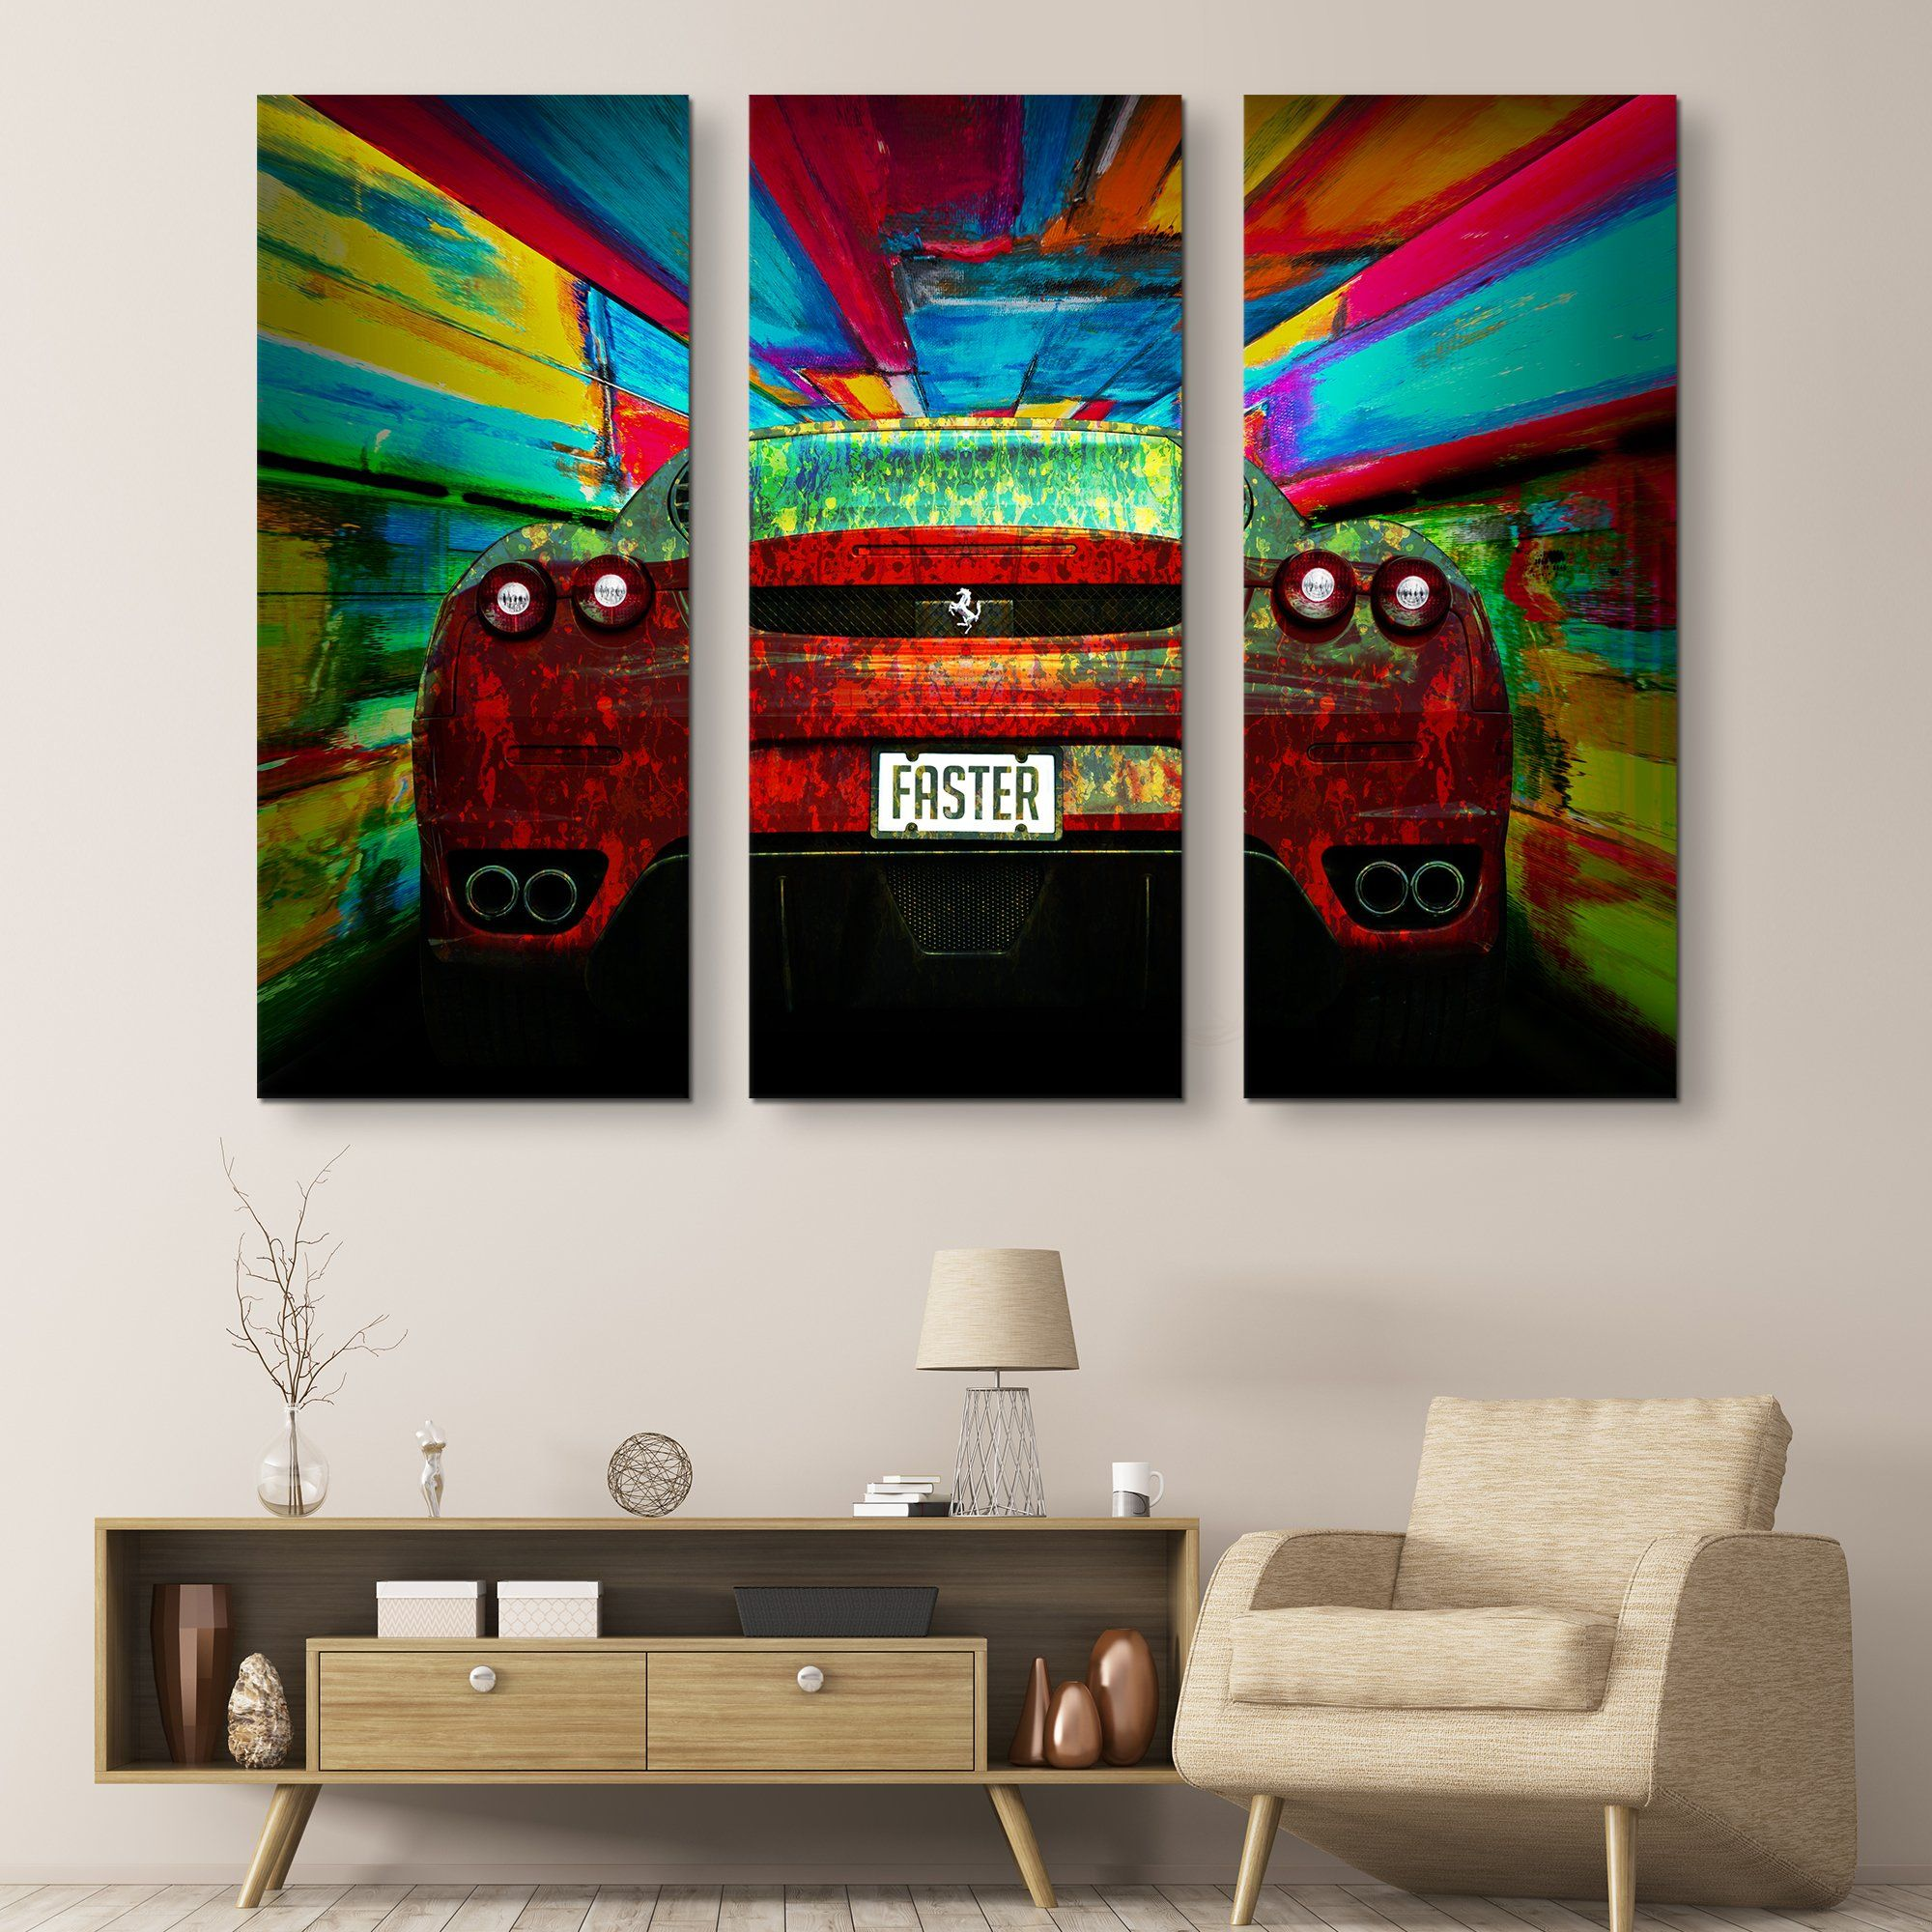 3 piece Ferrari - Faster wall art